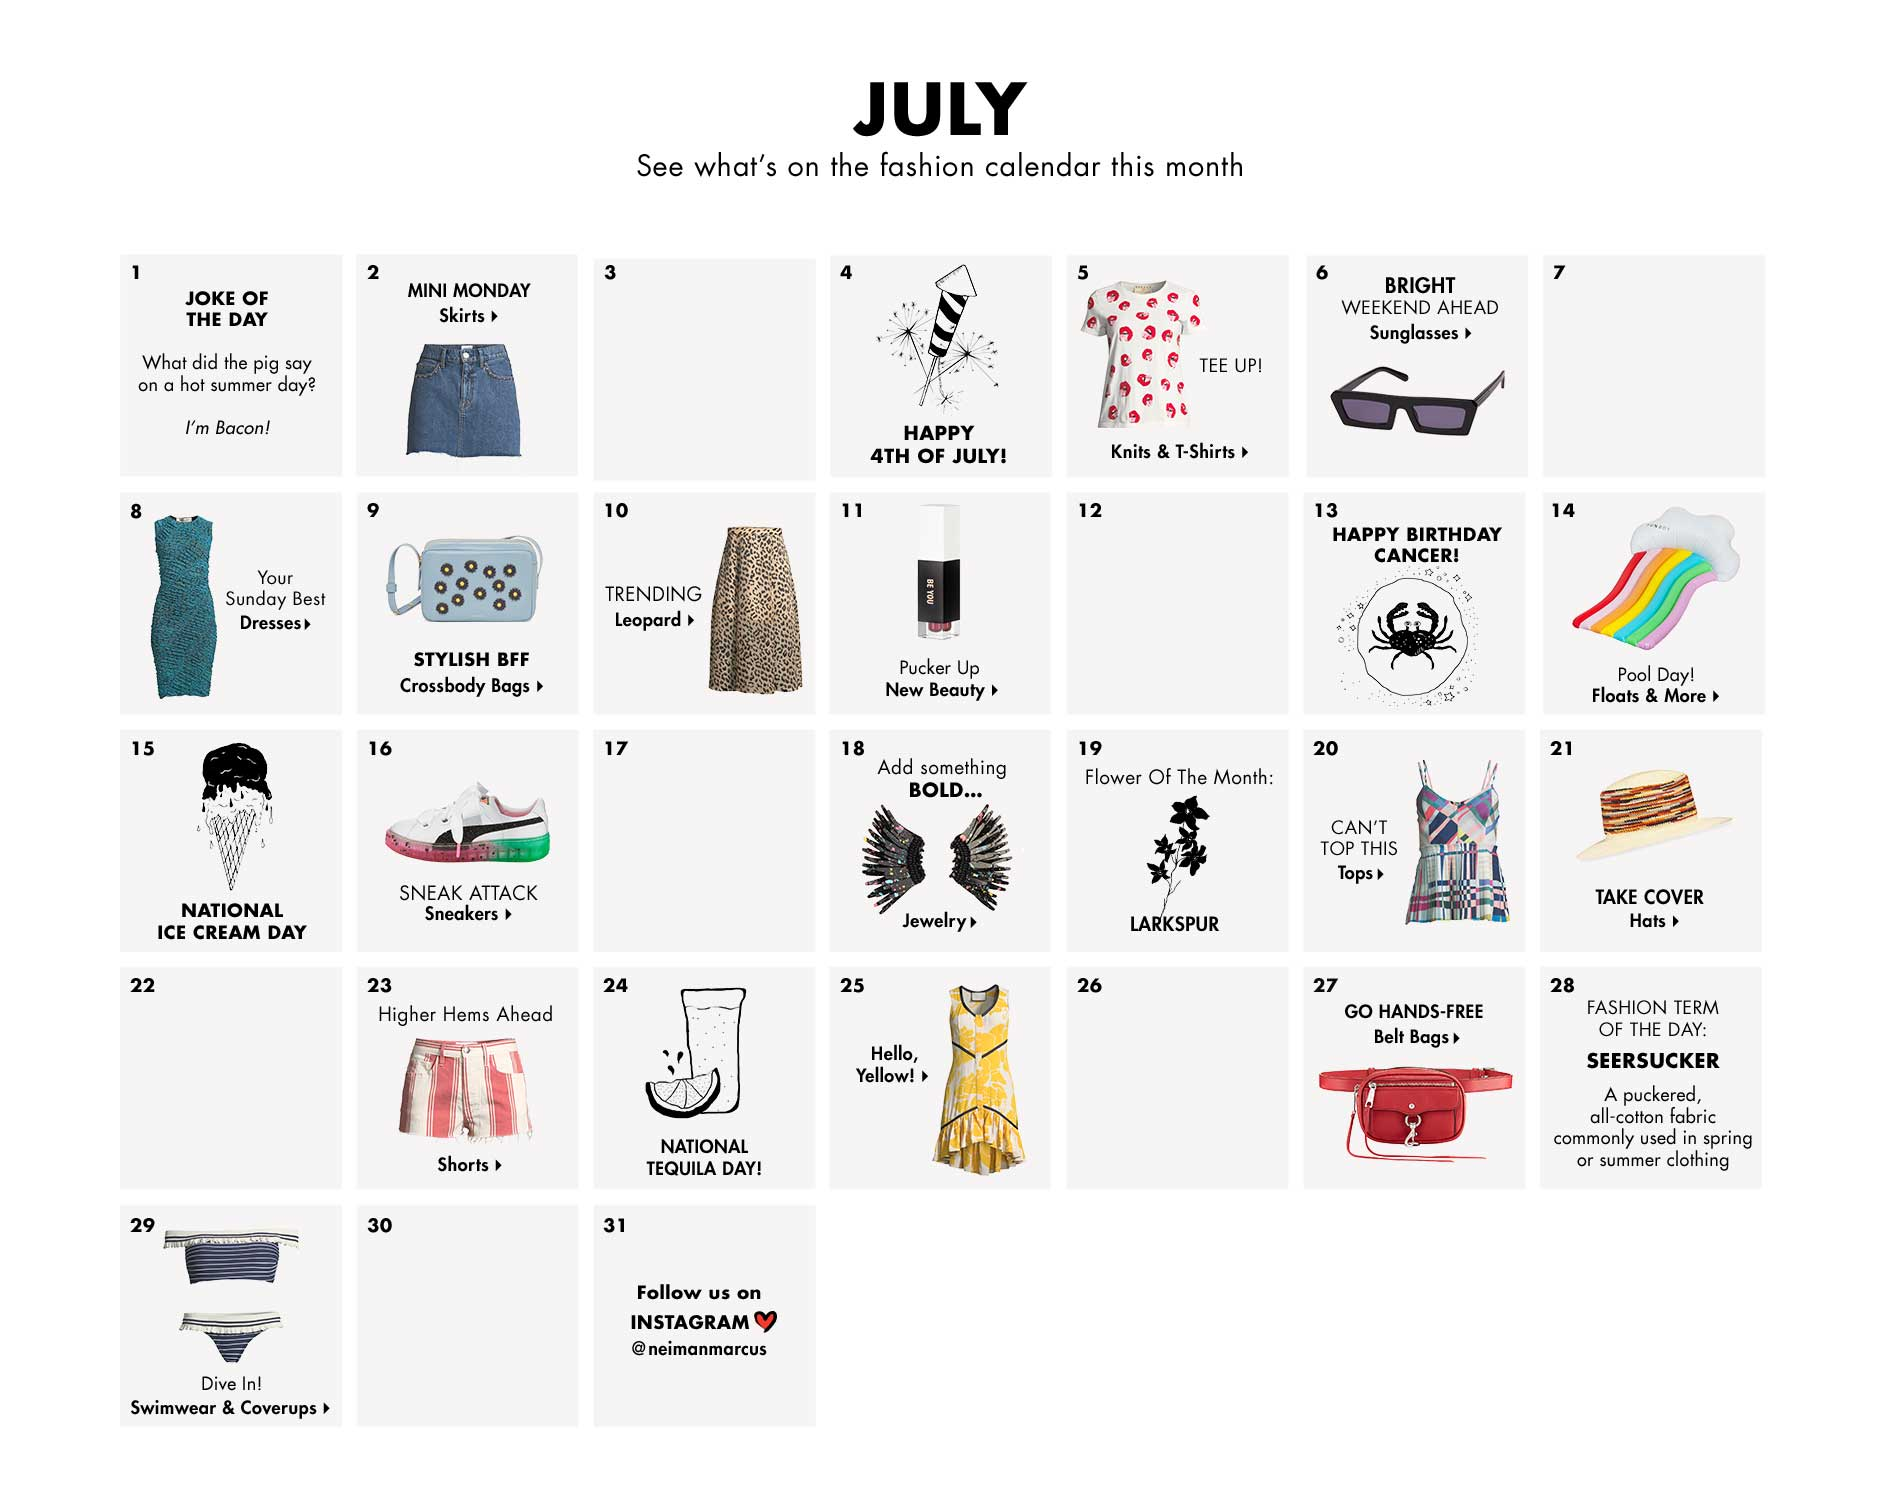 July - See what's on the CUSP fashion calendar this month